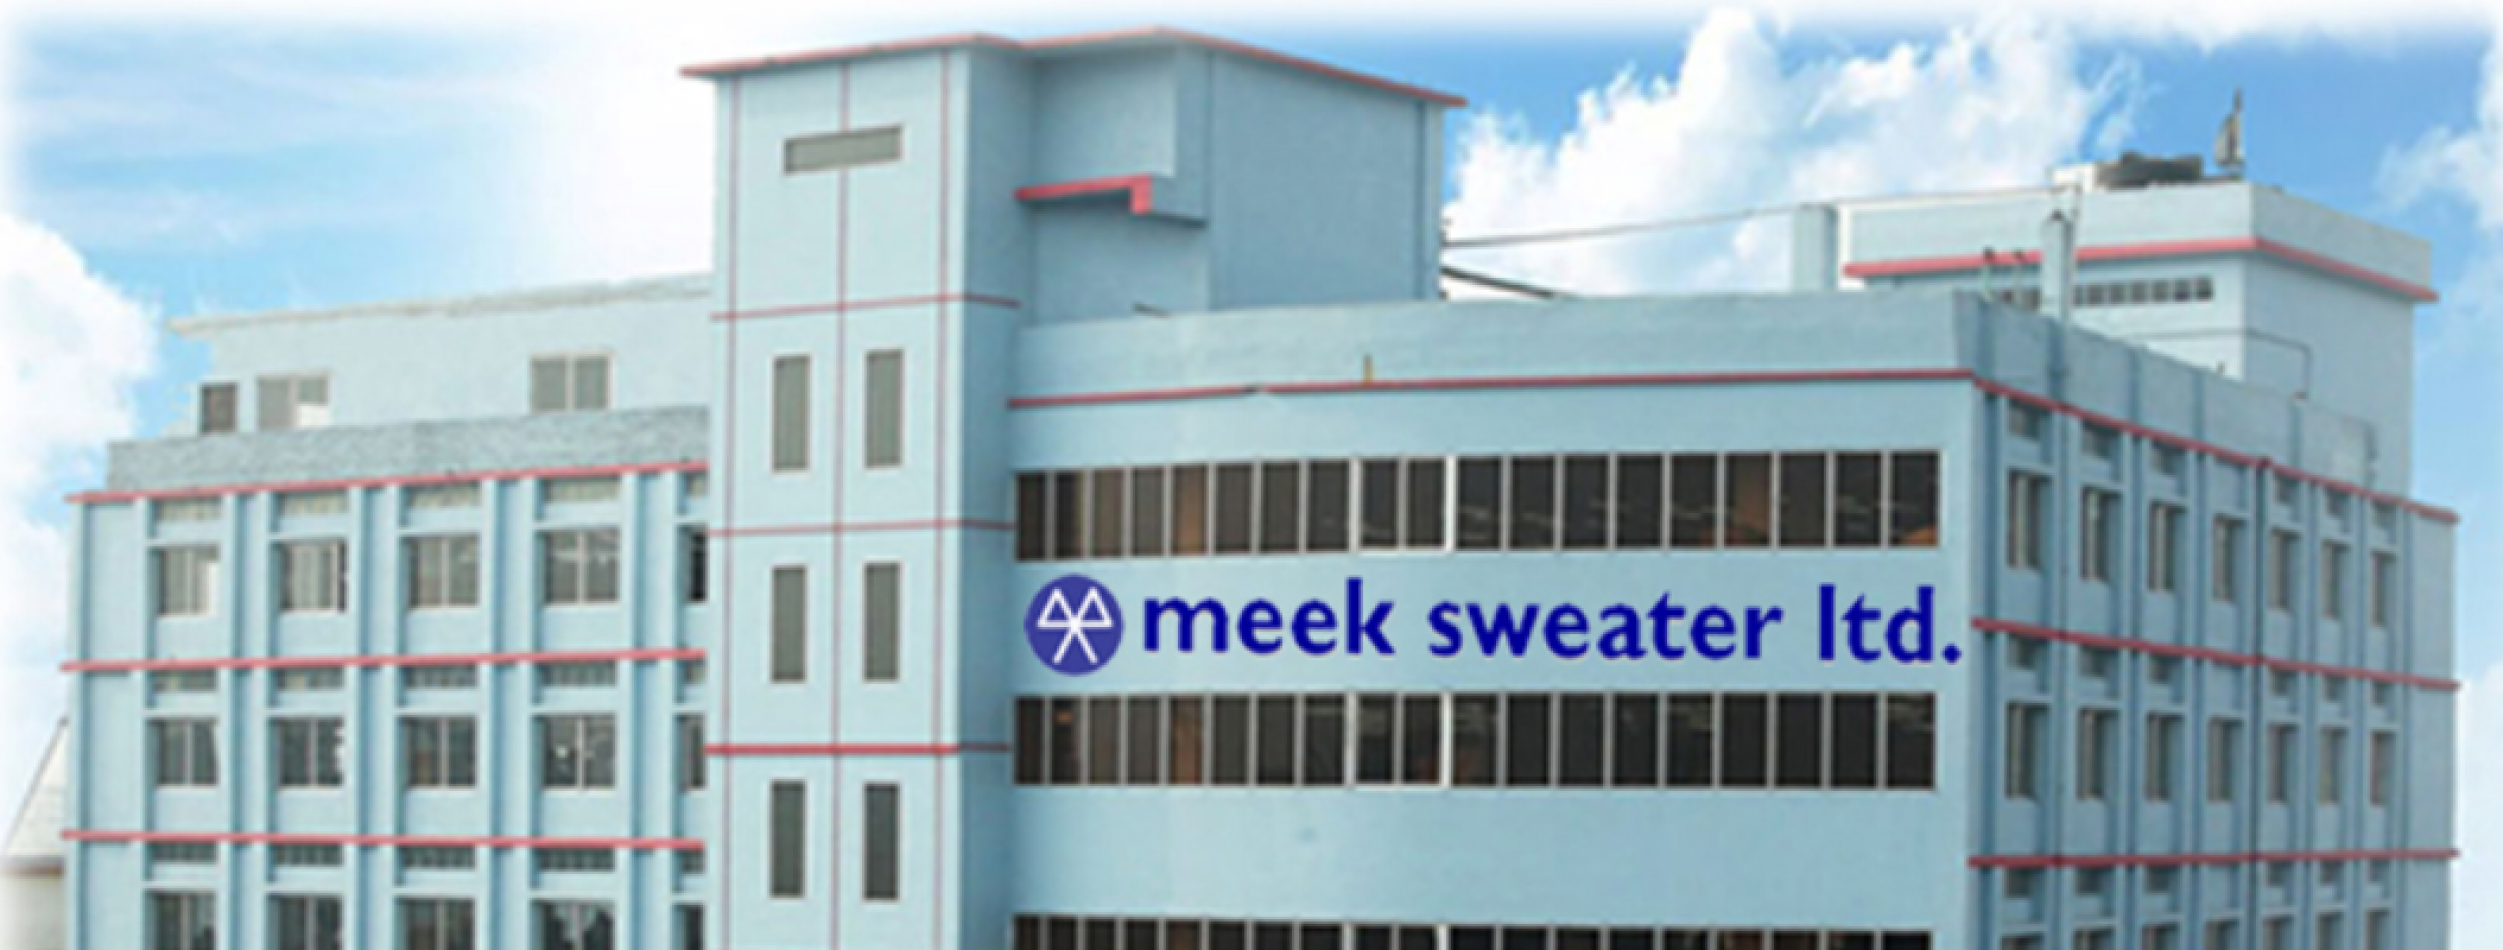 MEEK SWEATER LTD